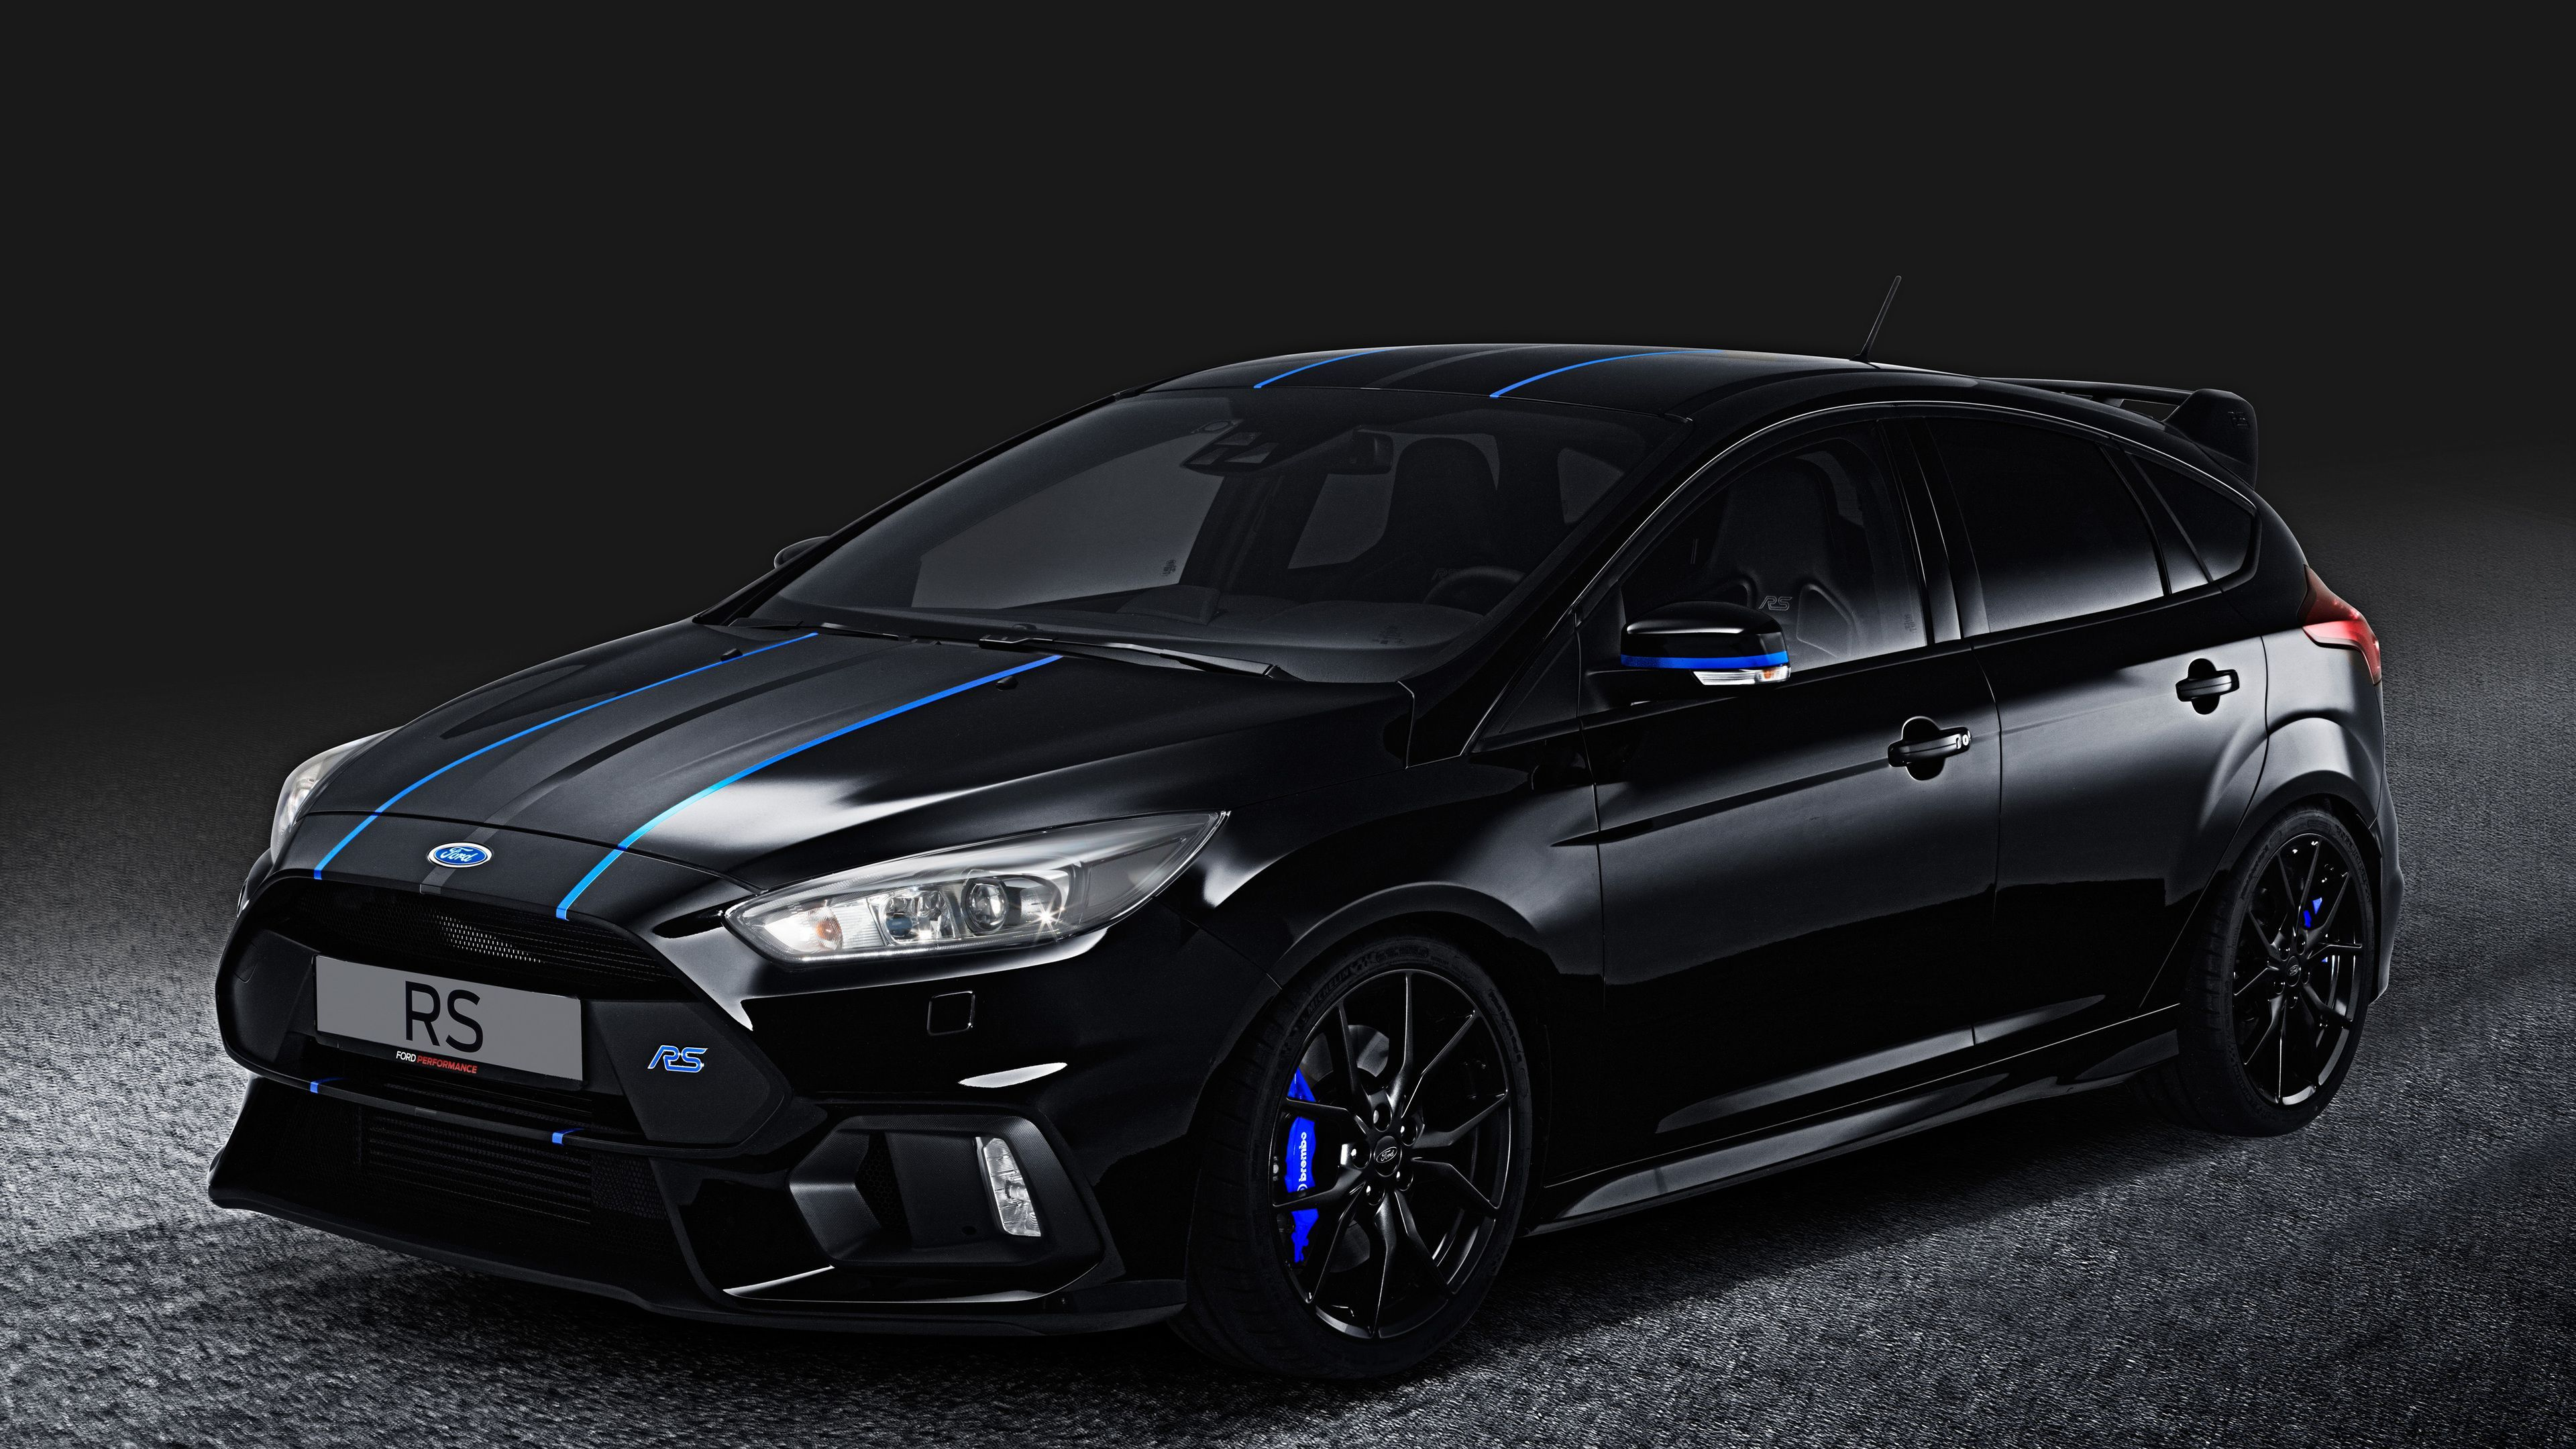 Focus Rs Wallpapers Top Free Focus Rs Backgrounds Wallpaperaccess